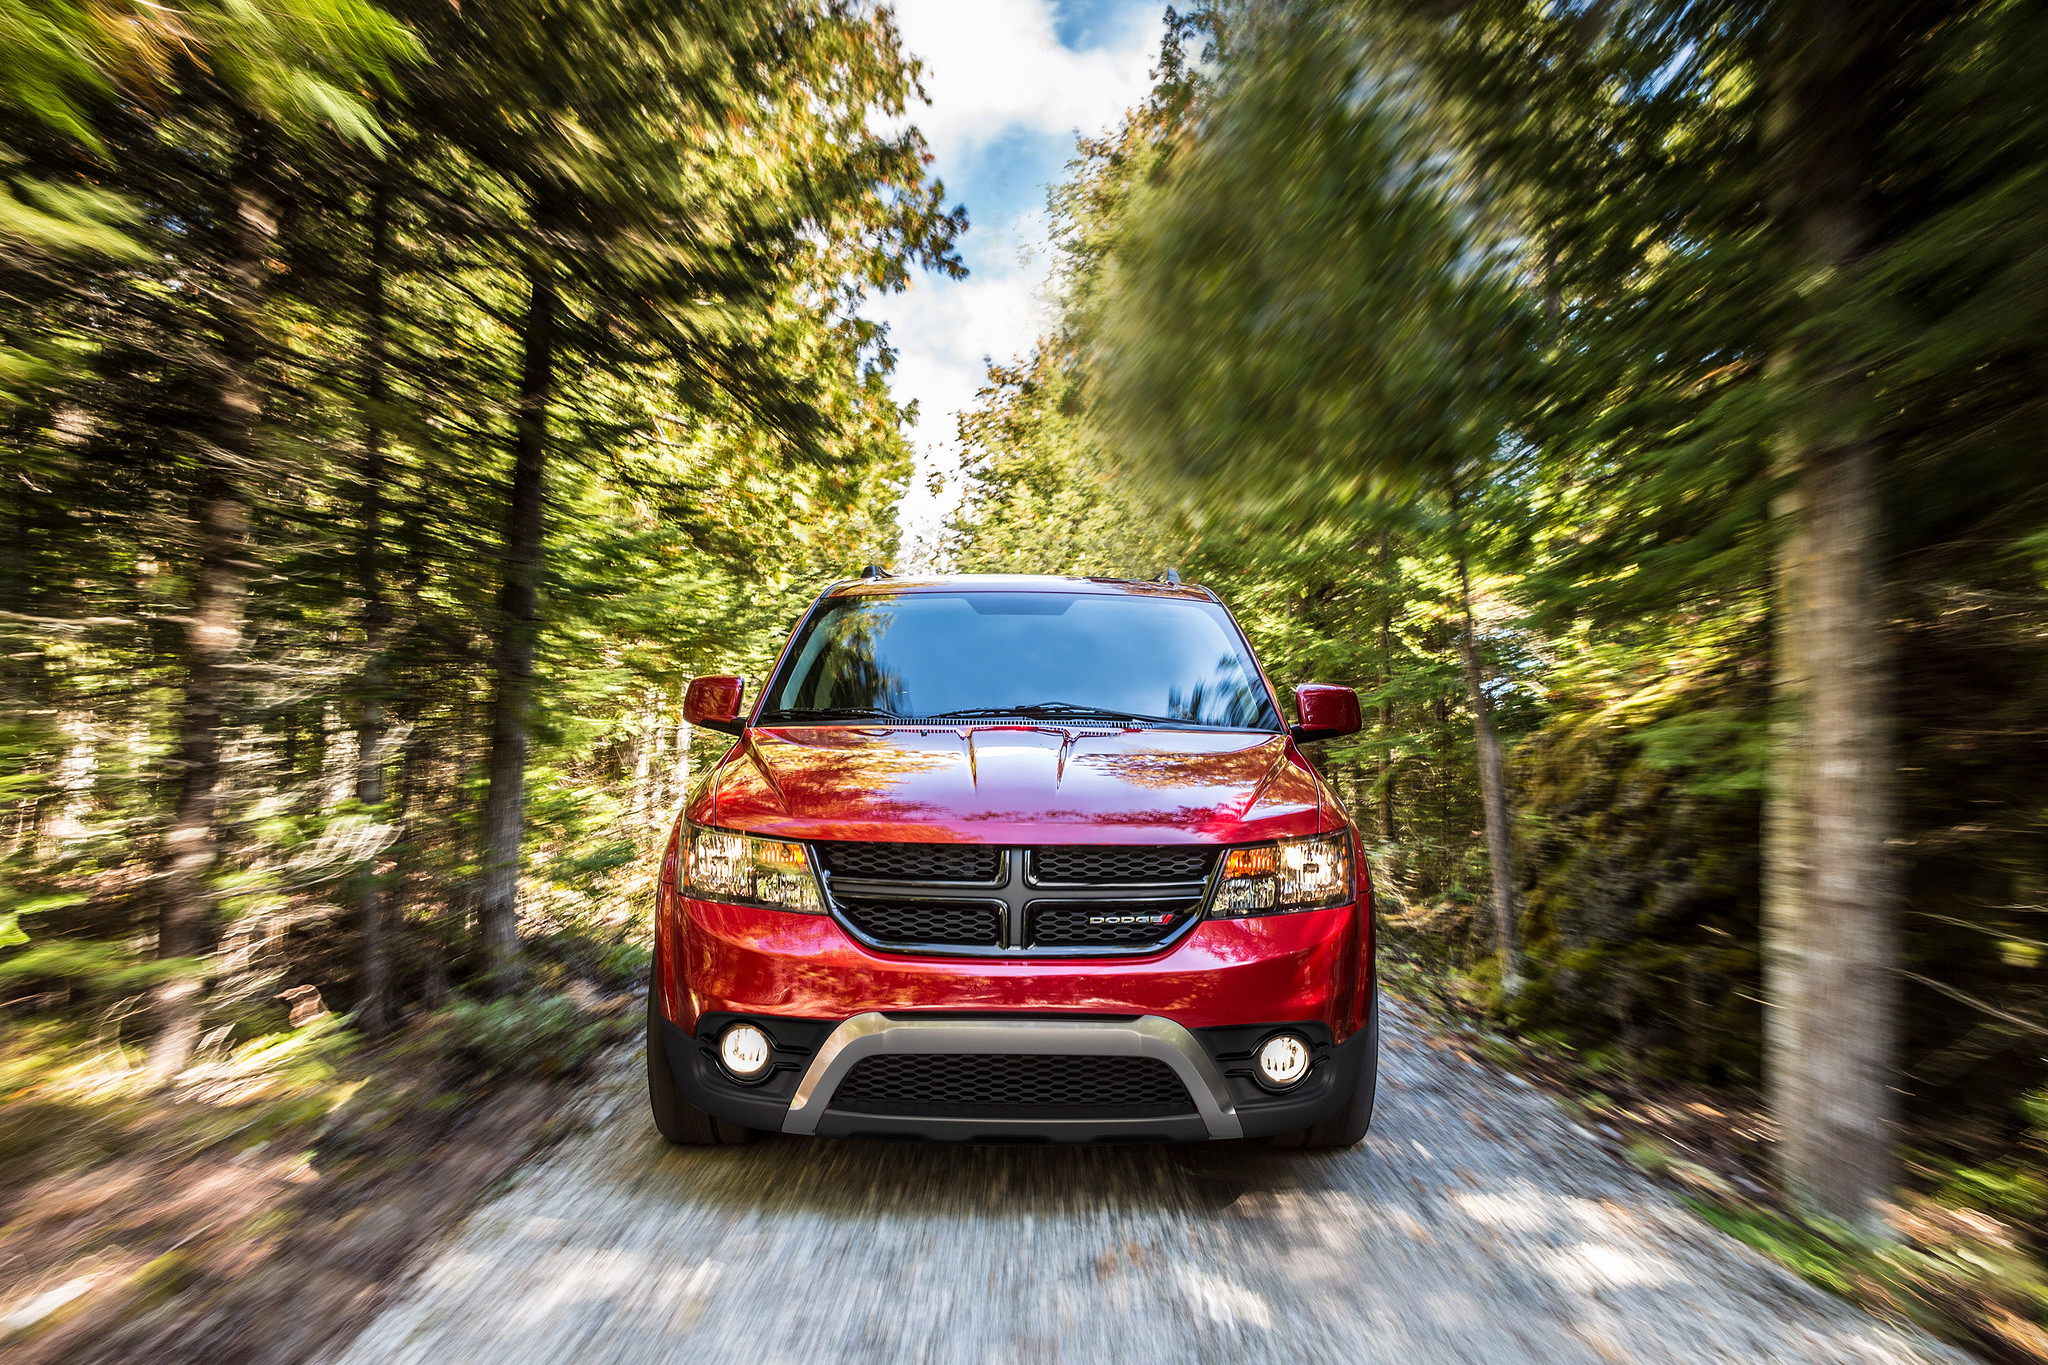 2018 Dodge Journey Overview - The News Wheel